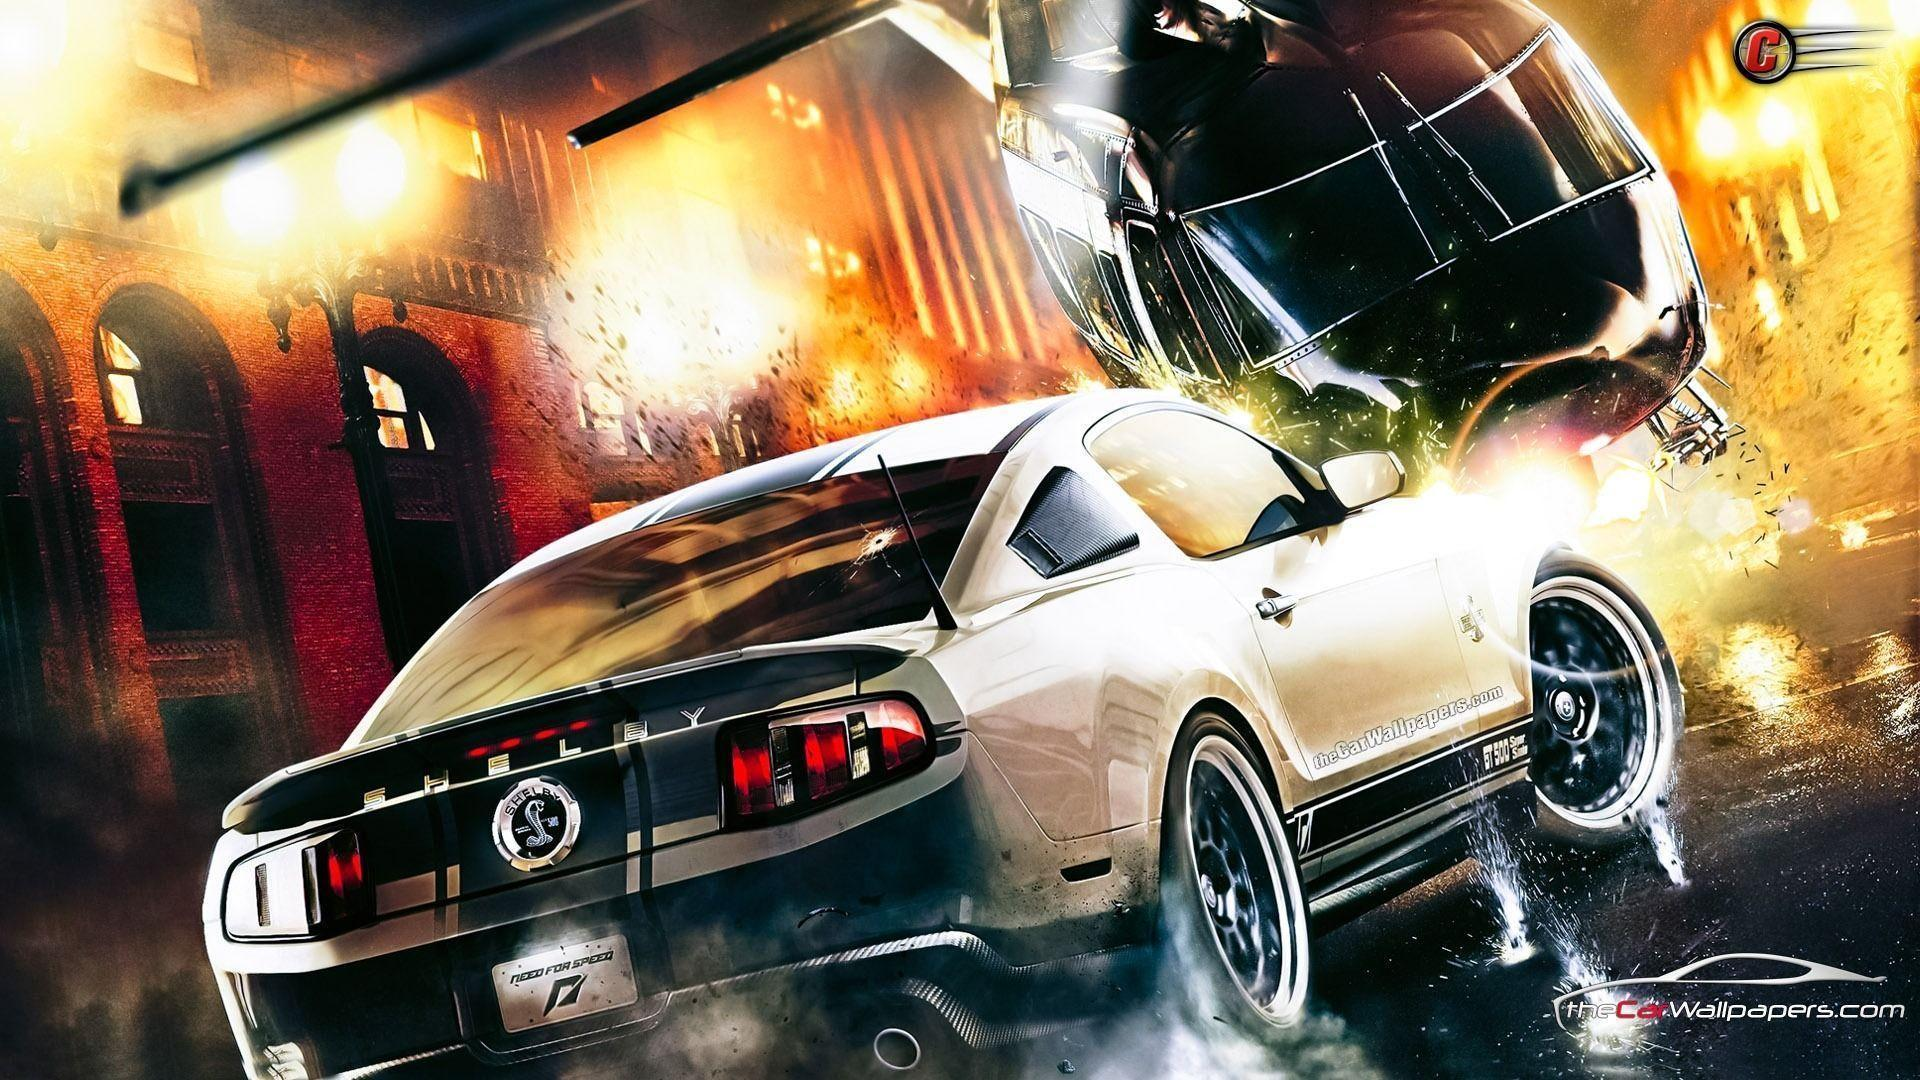 Nfs Most Wanted 2 Cars Wallpapers Need For Speed Wallpapers Wallpaper Cave